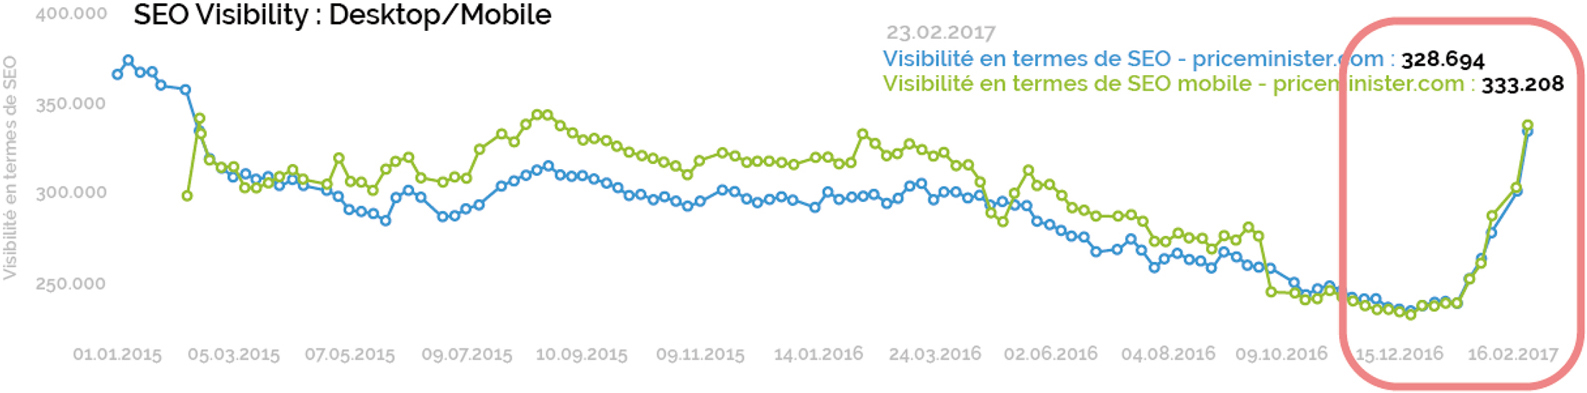 Priceminister seo visibility graph